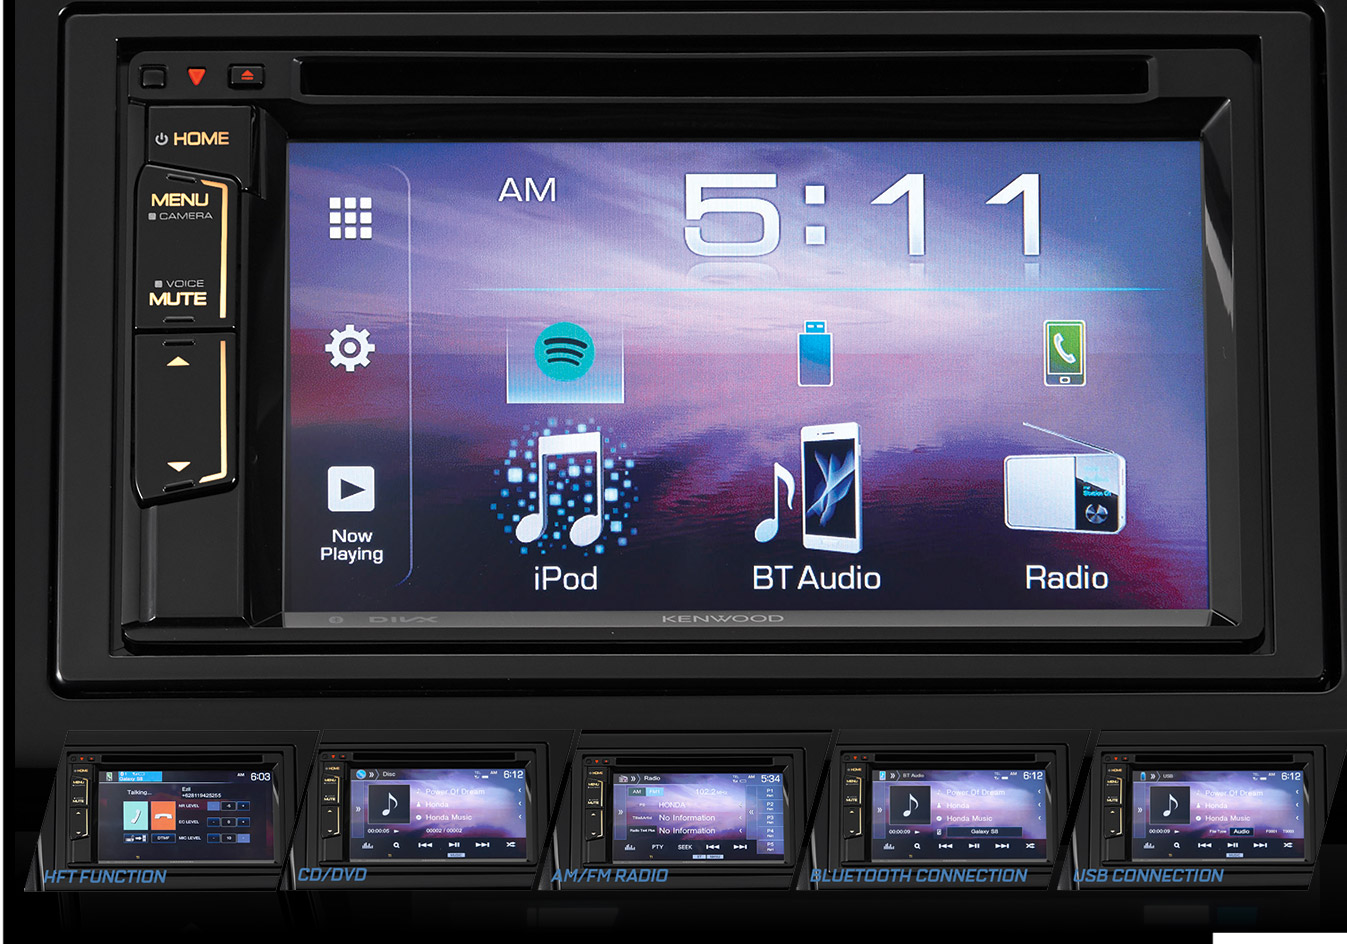 6.122-Touchscreen-Display-Audio-with-Bluetooth-HFT-Function